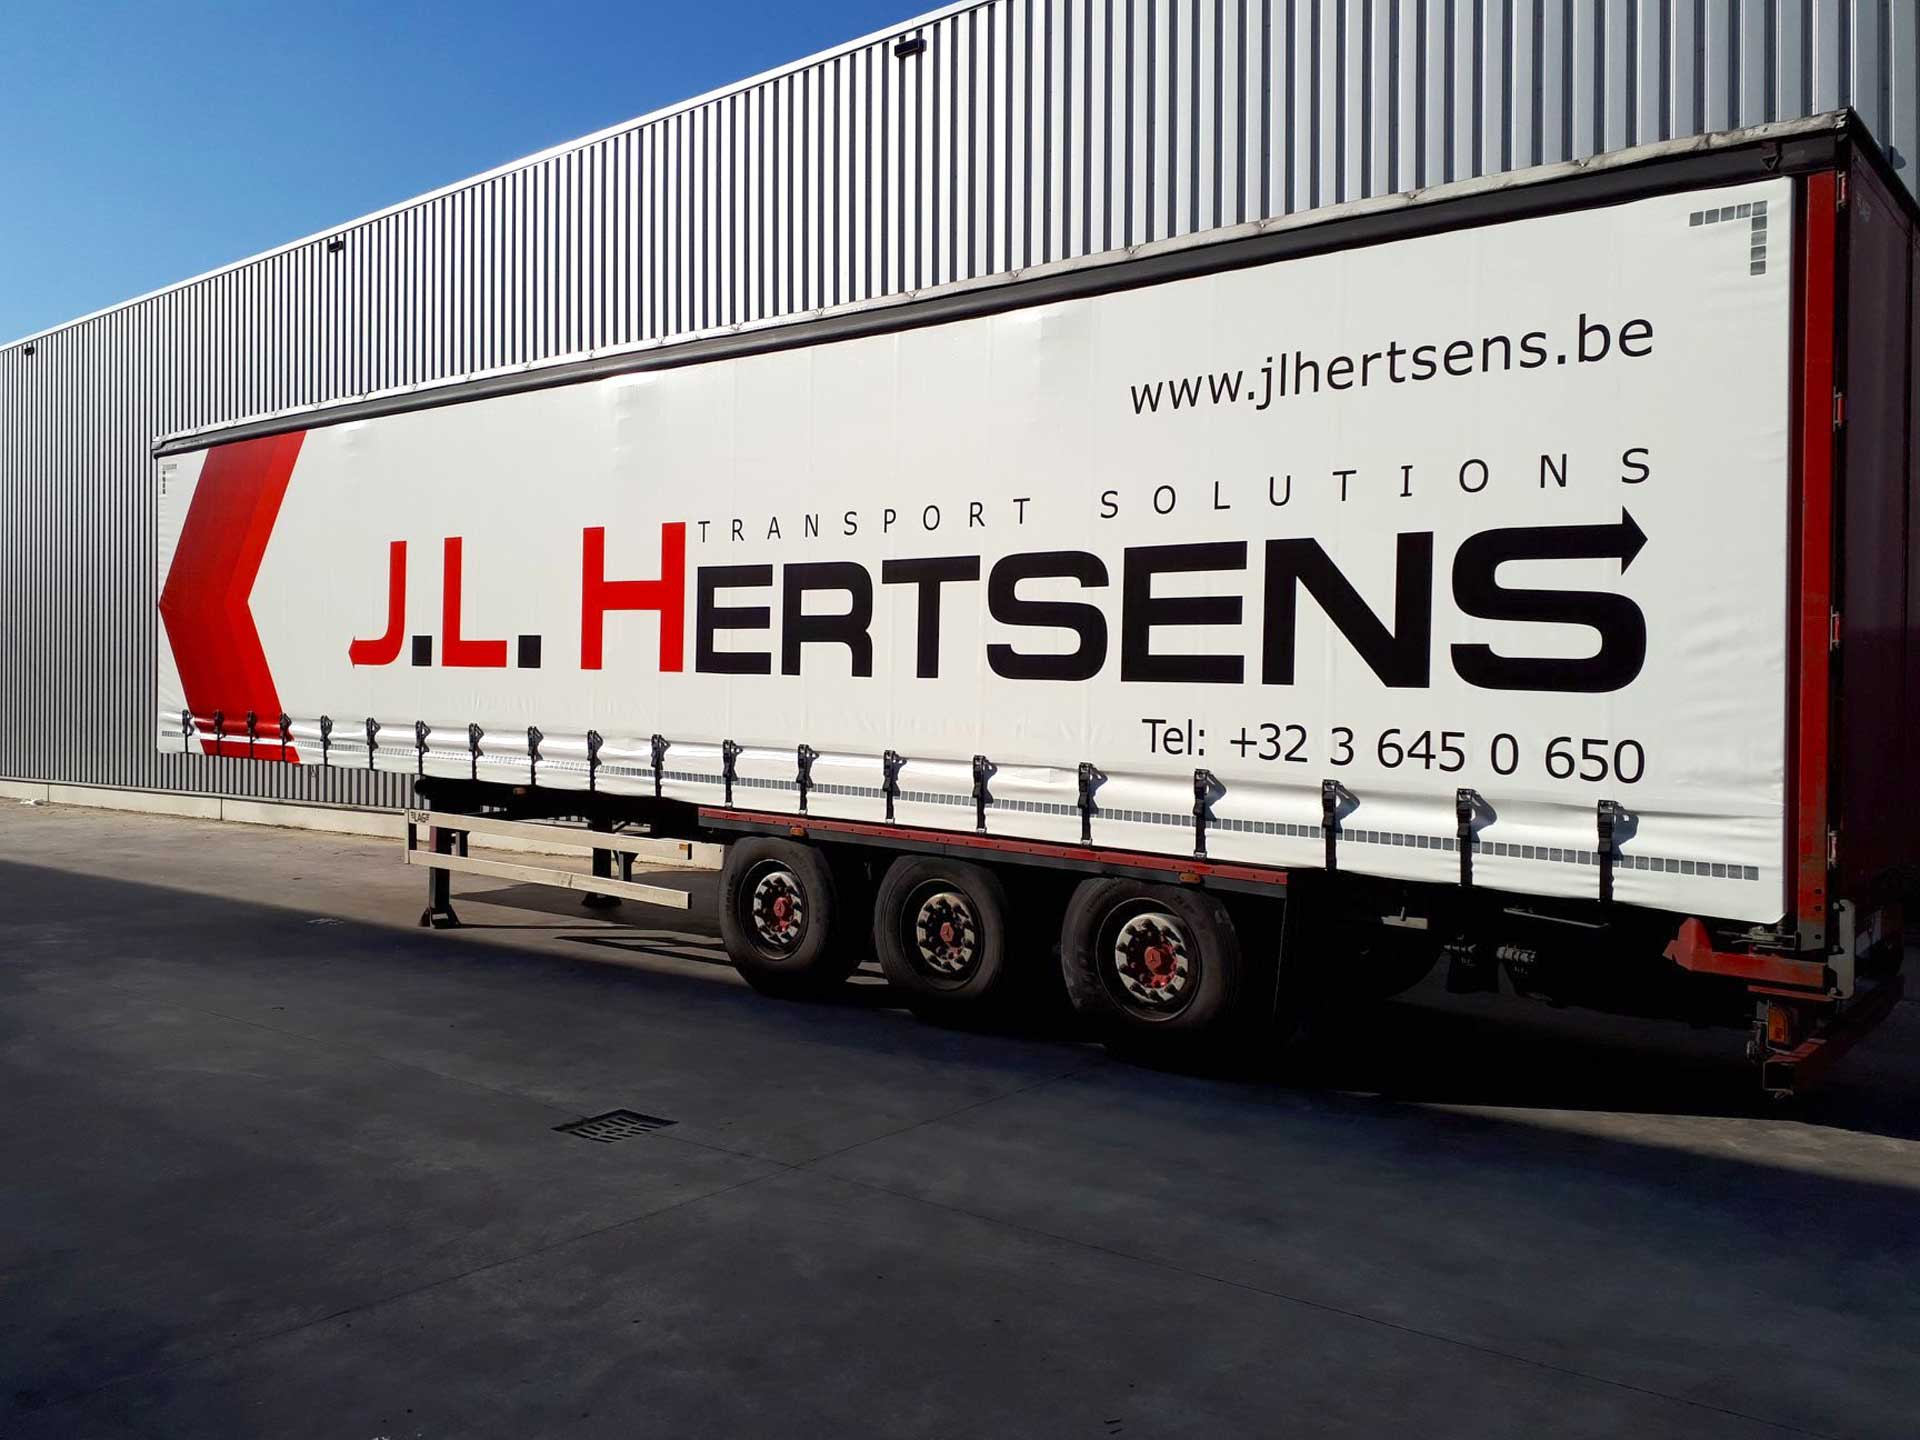 JL Hertsens by InfiniShield